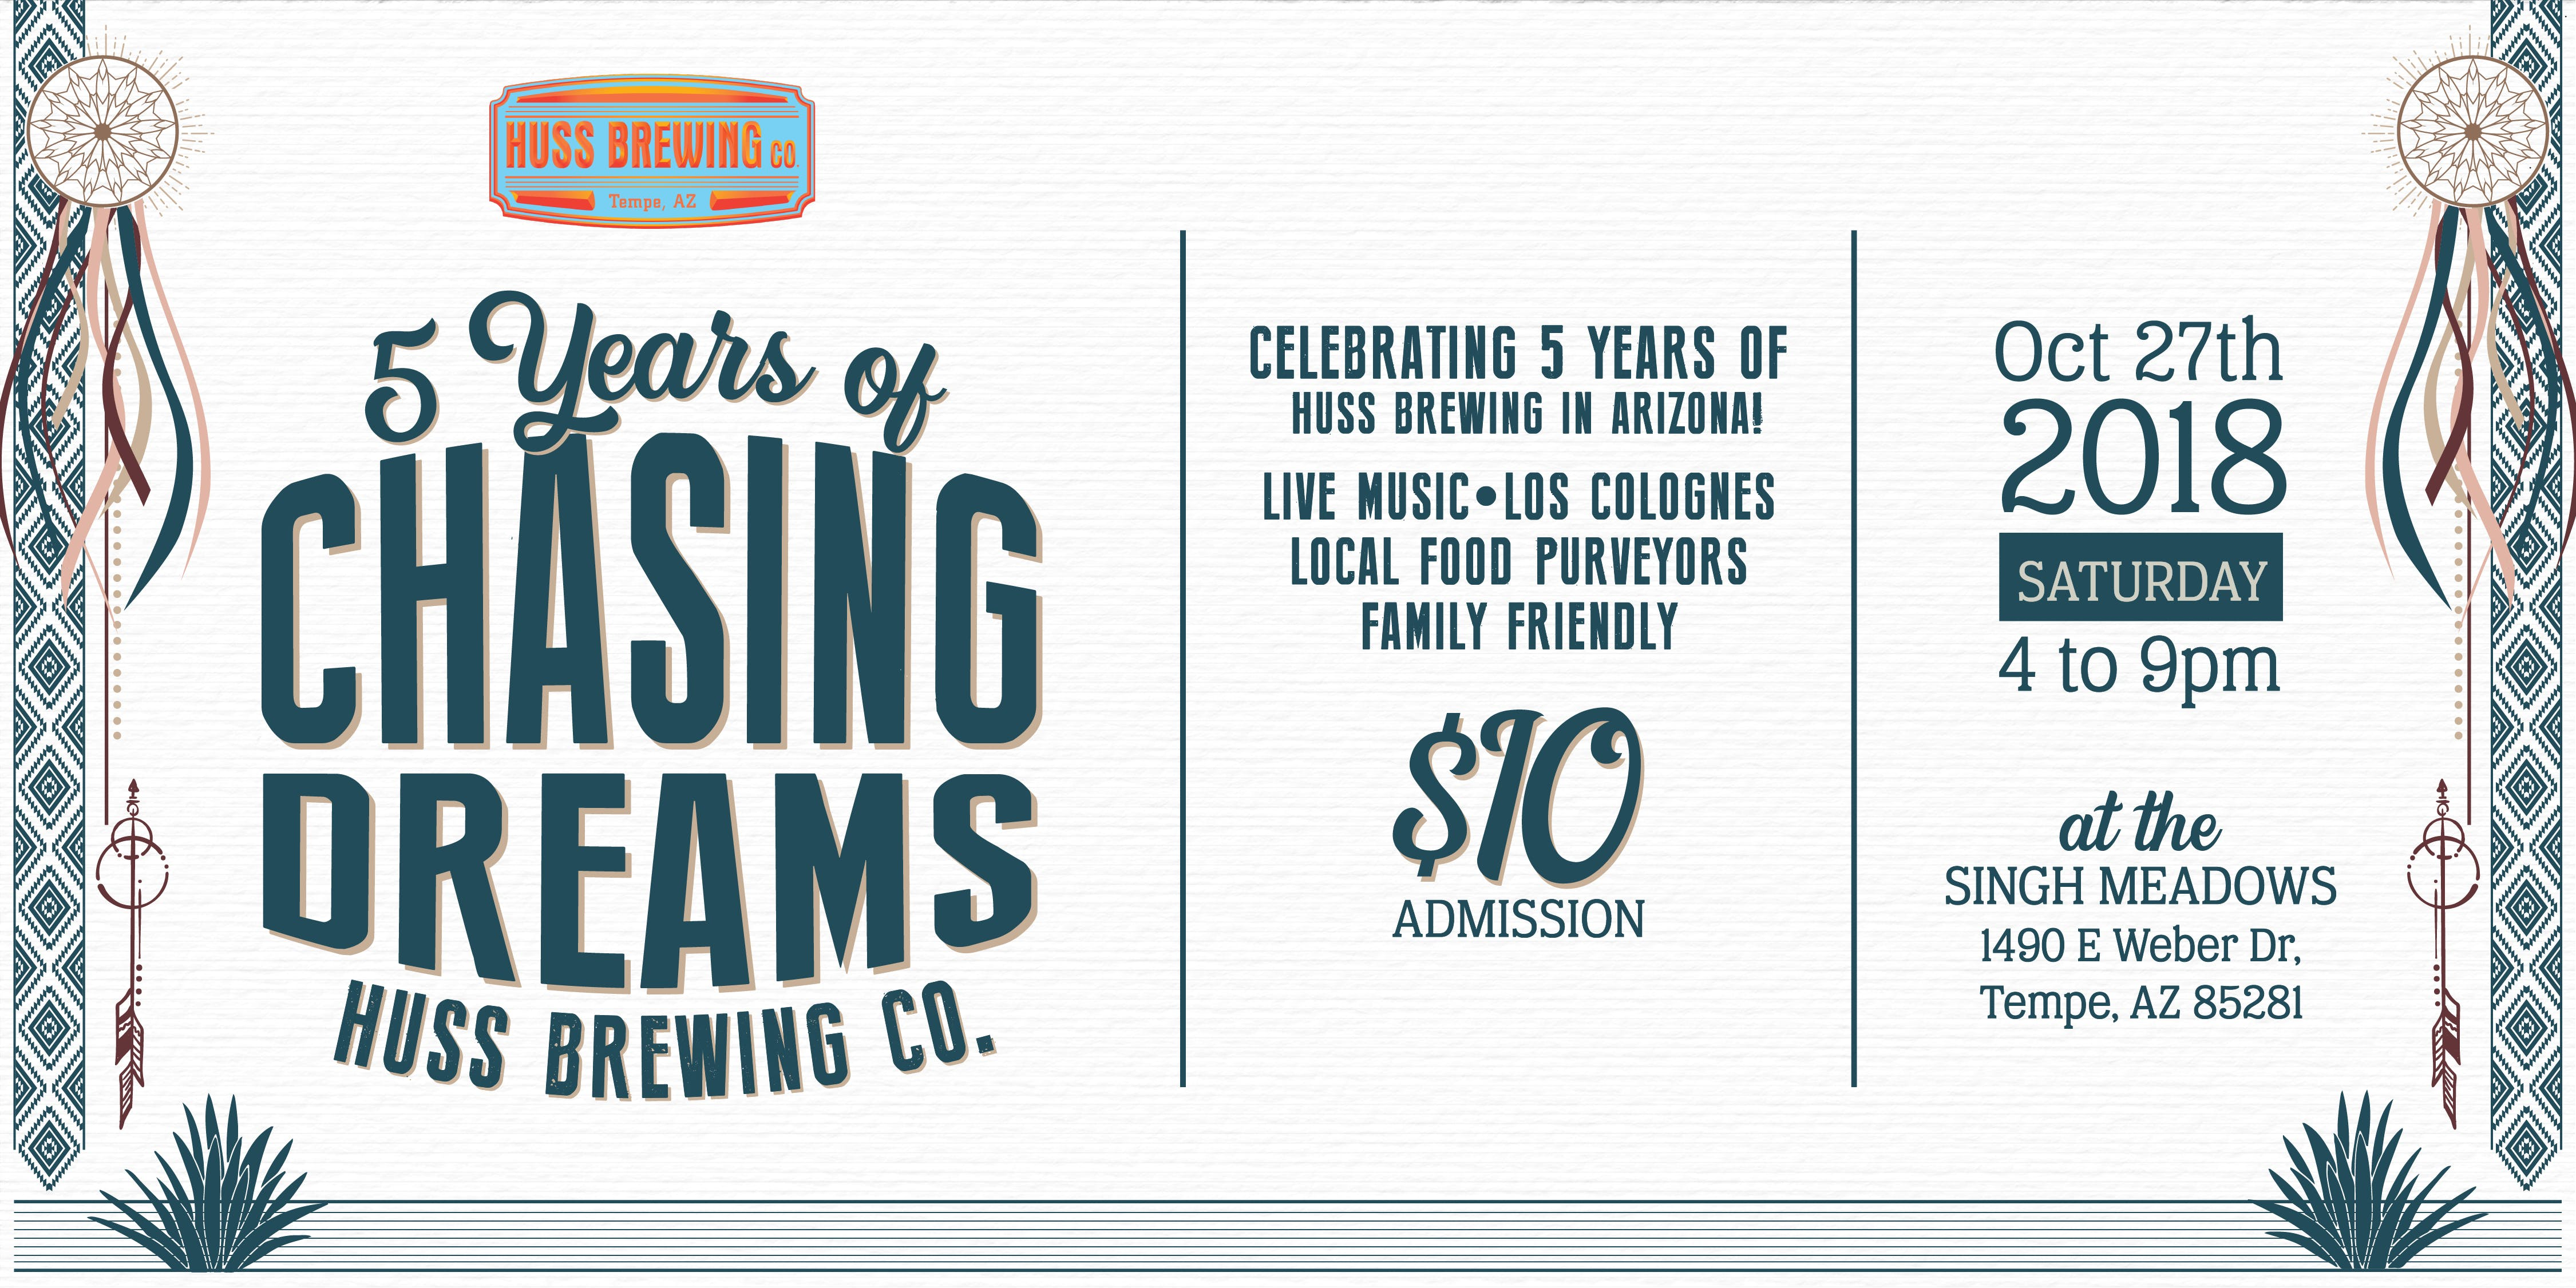 5 Years of Chasing Dreams - Huss Brewing 5 Year Anniversary